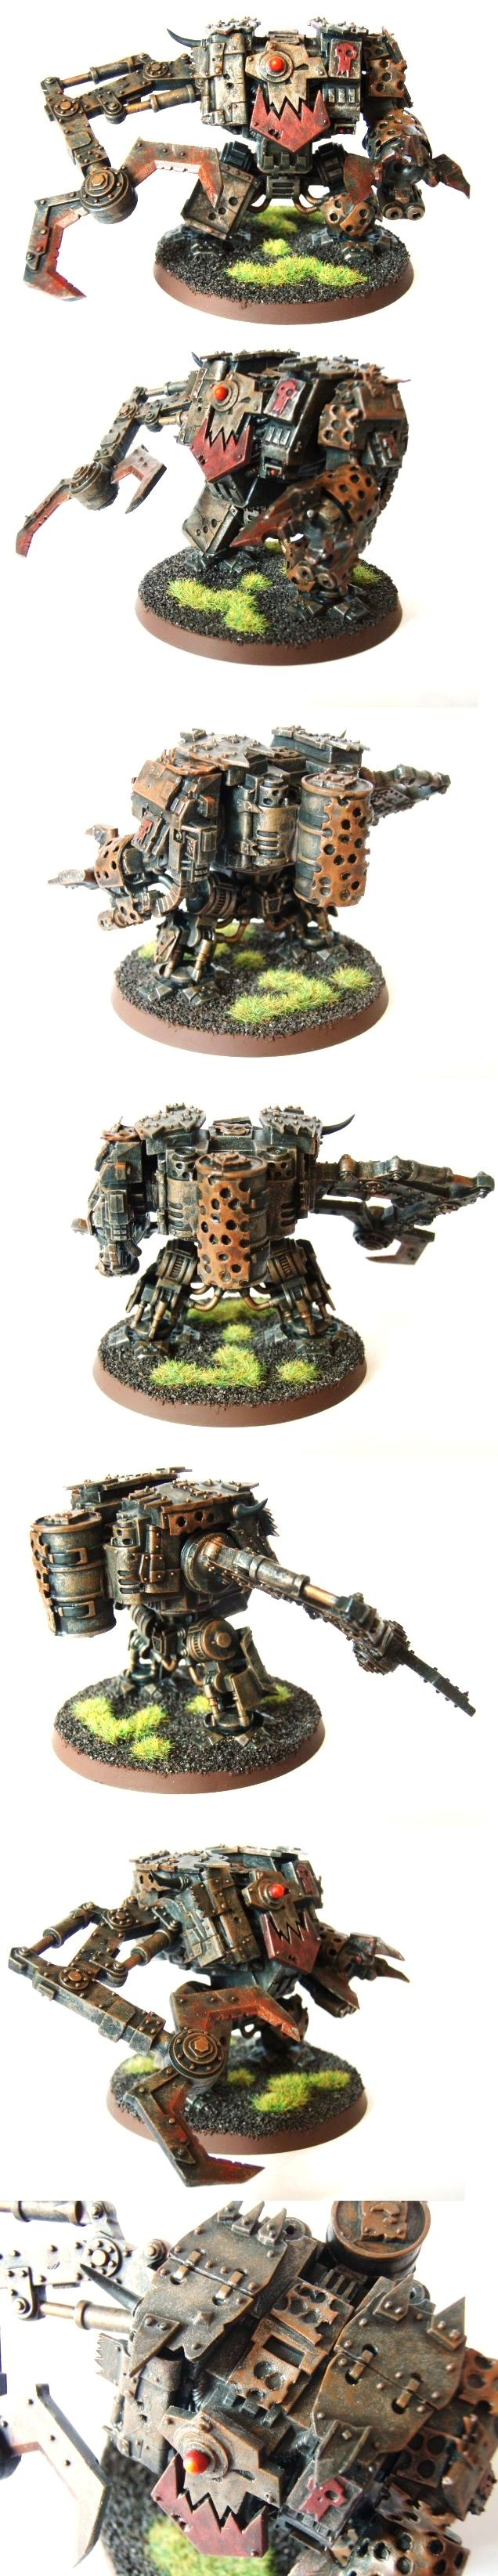 Ork Deff Dread aka Looted Space Marines Dreadnought / Cybot finished